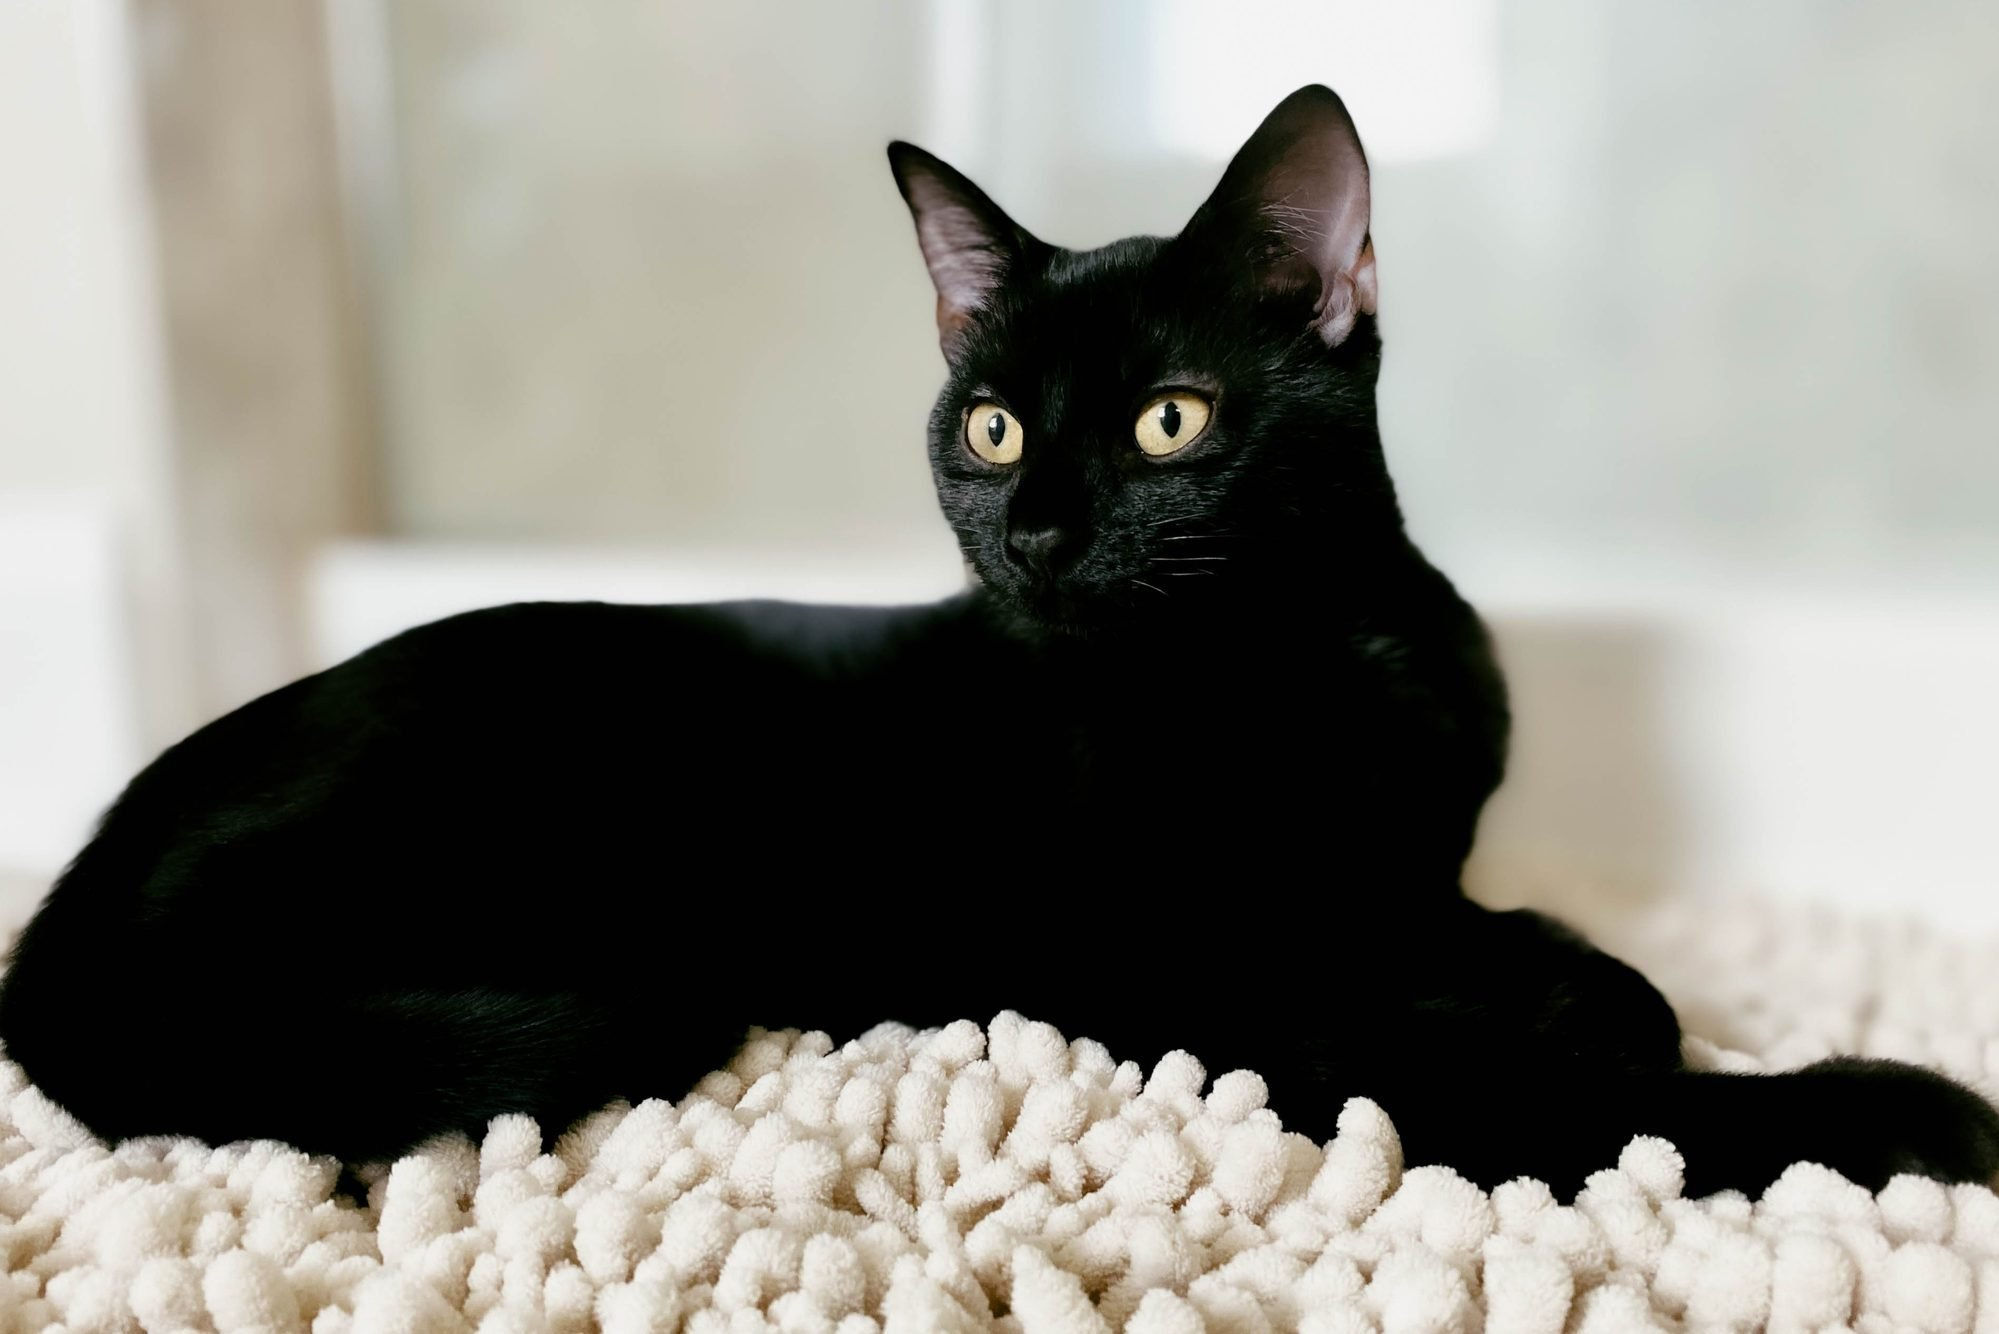 Close-Up of Black Kitten on Bathroom Rug with Eyes Wide Open